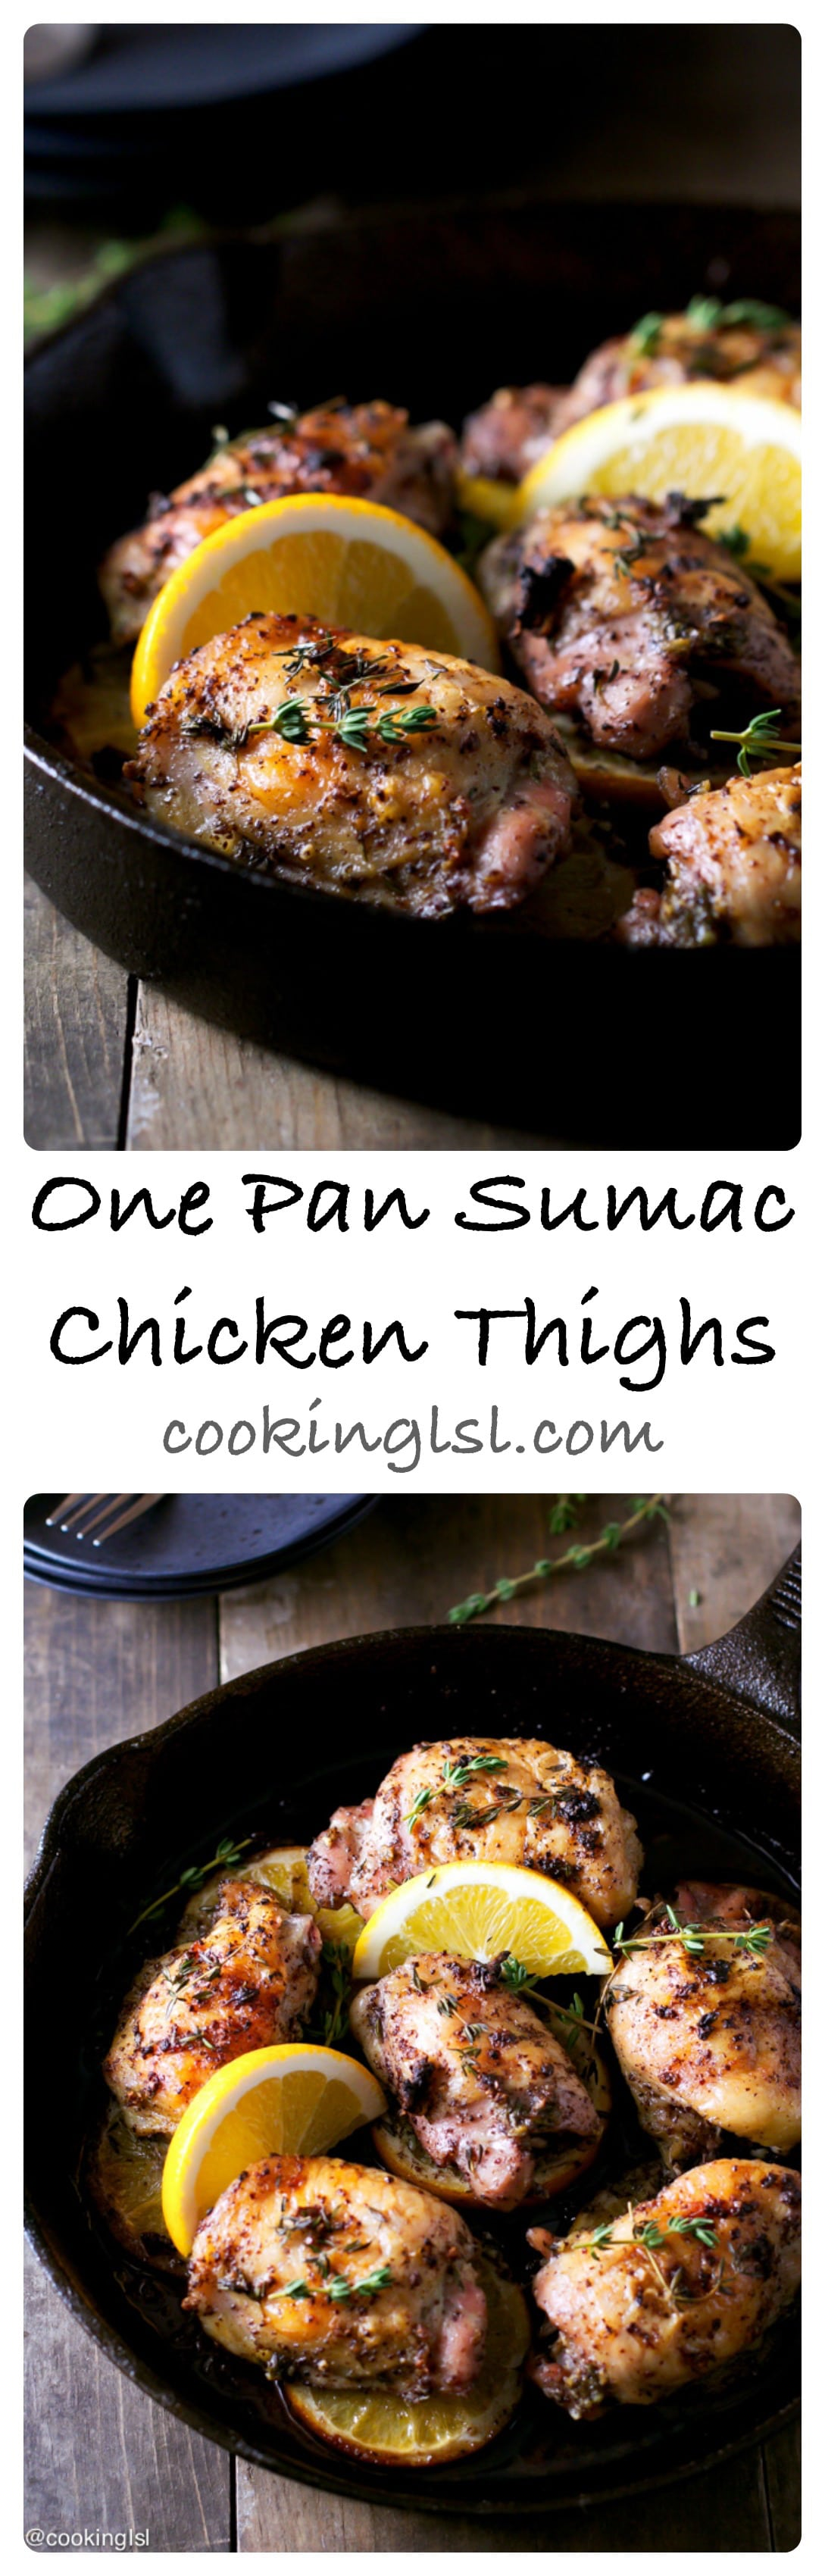 one-pan-sumac-chicken-thighs